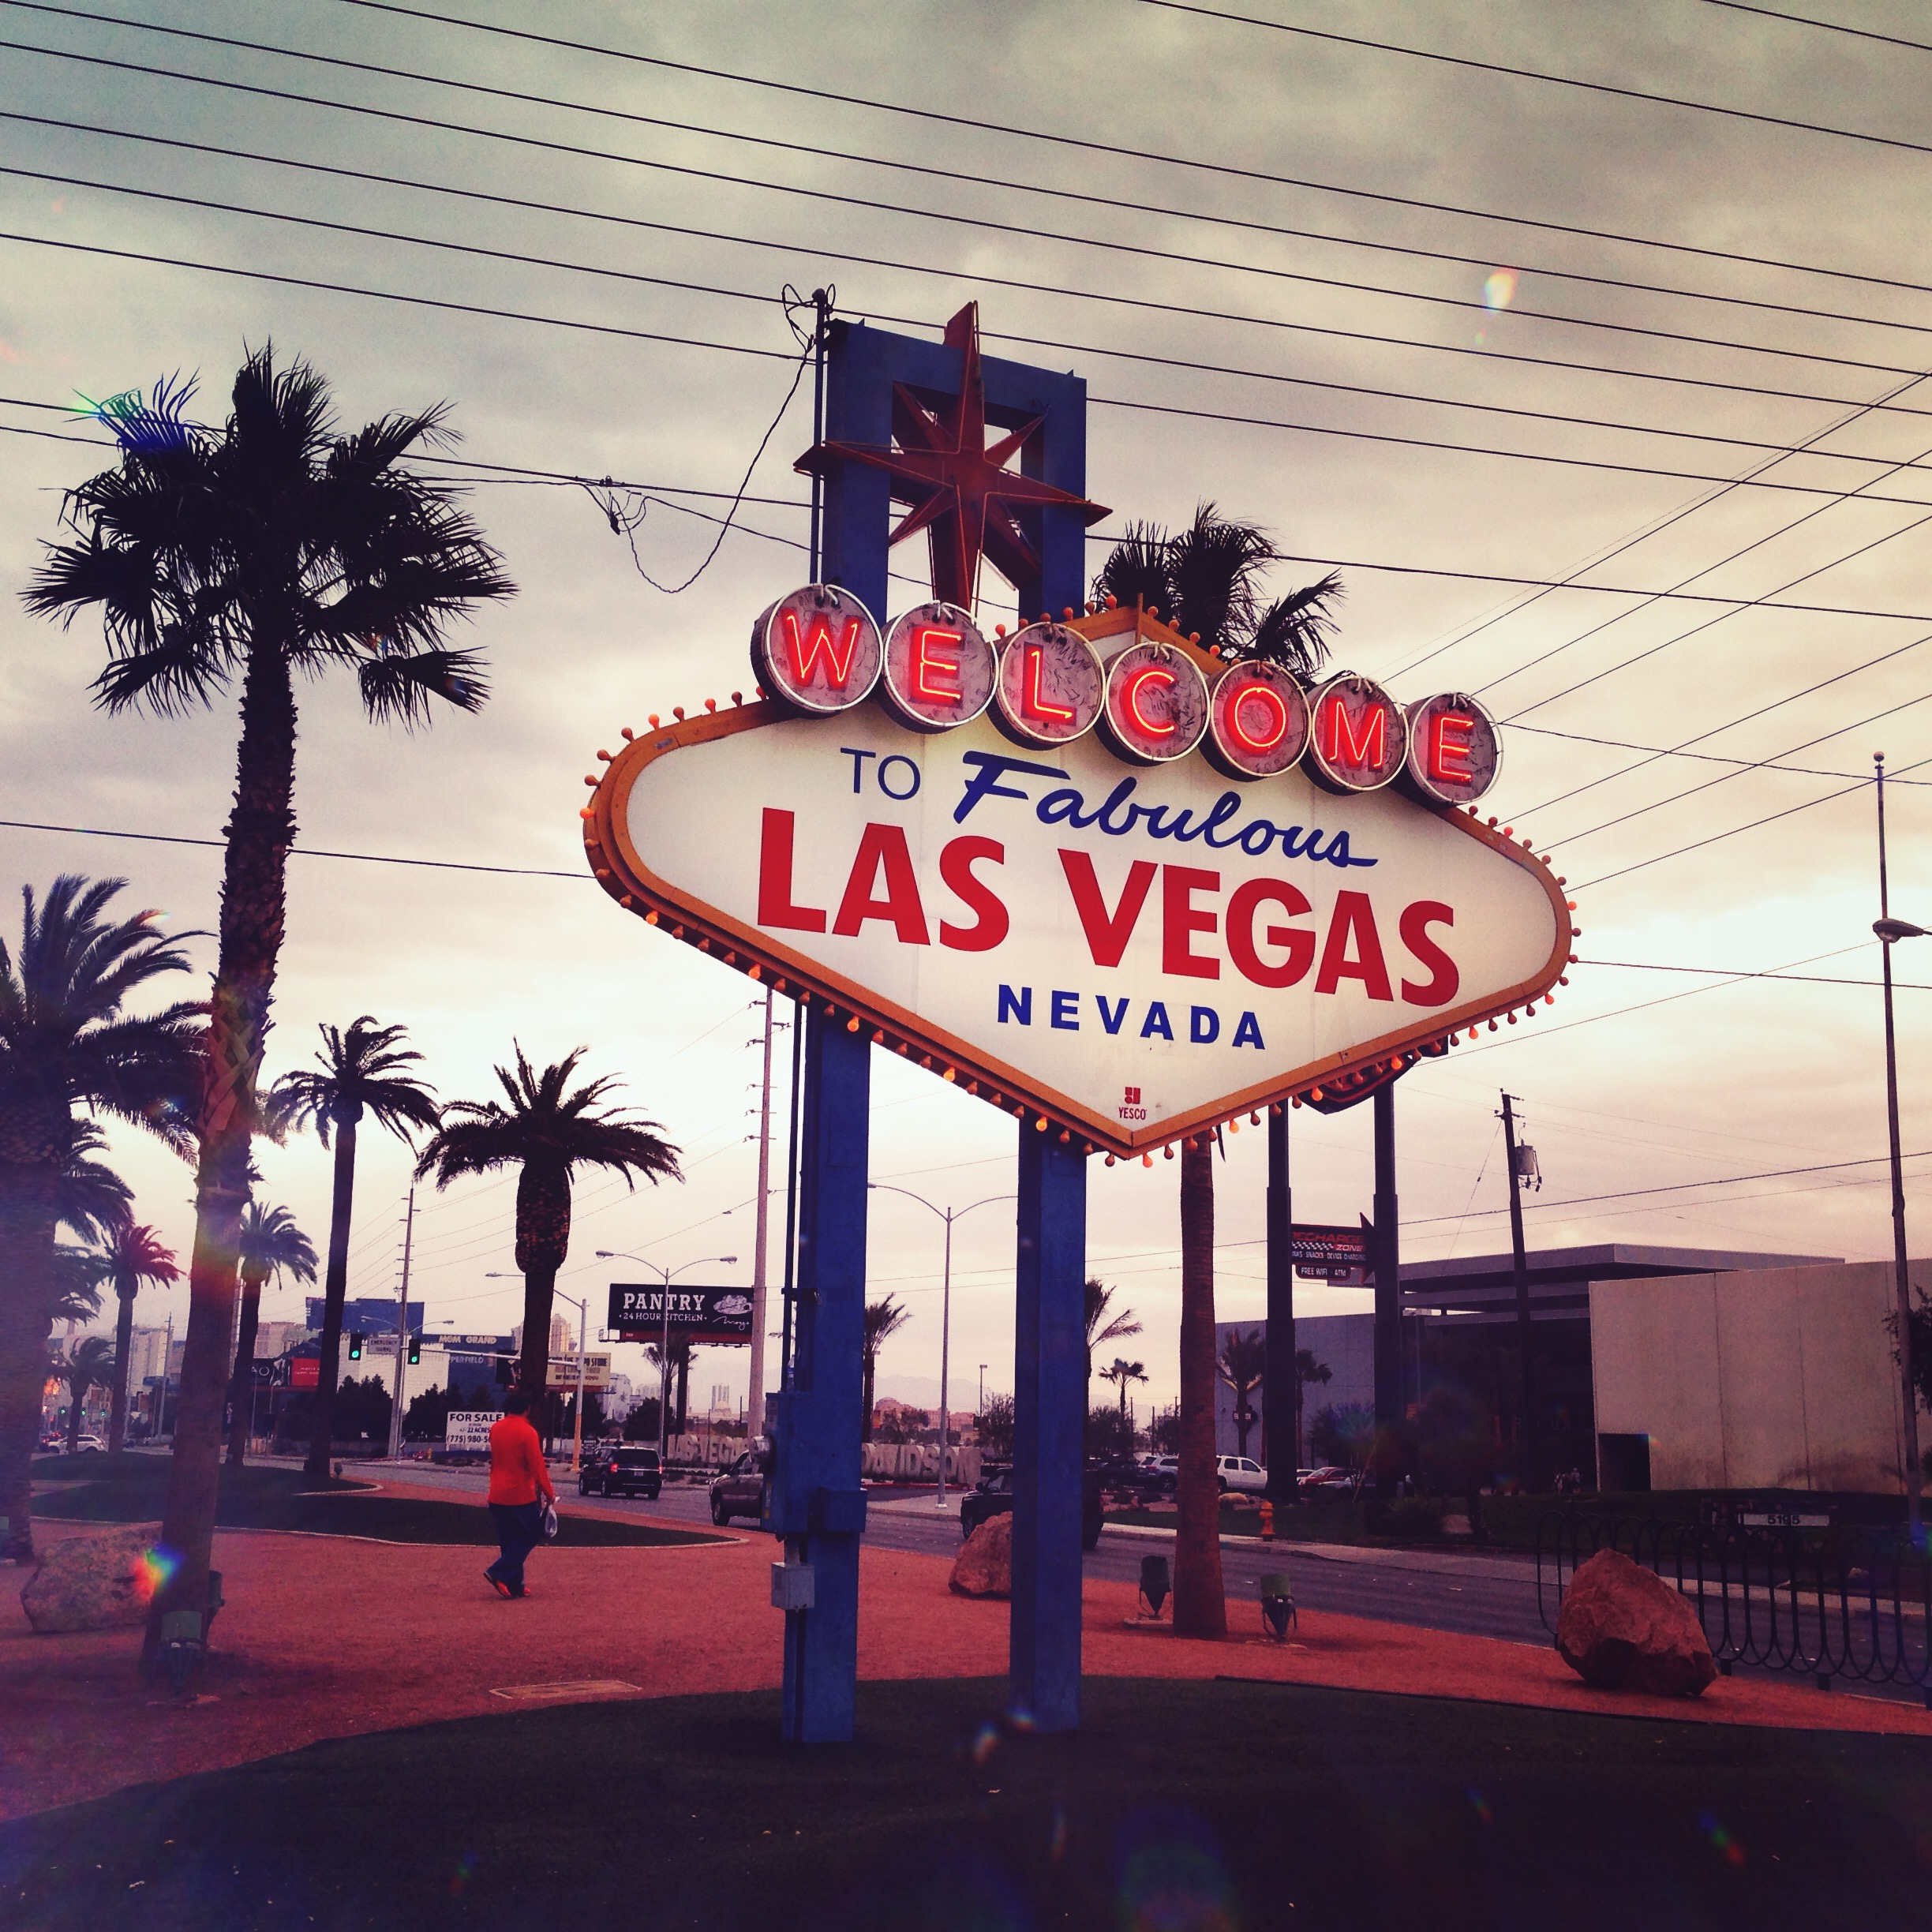 Viva Las Vegas - copyright by David Quitmeyer